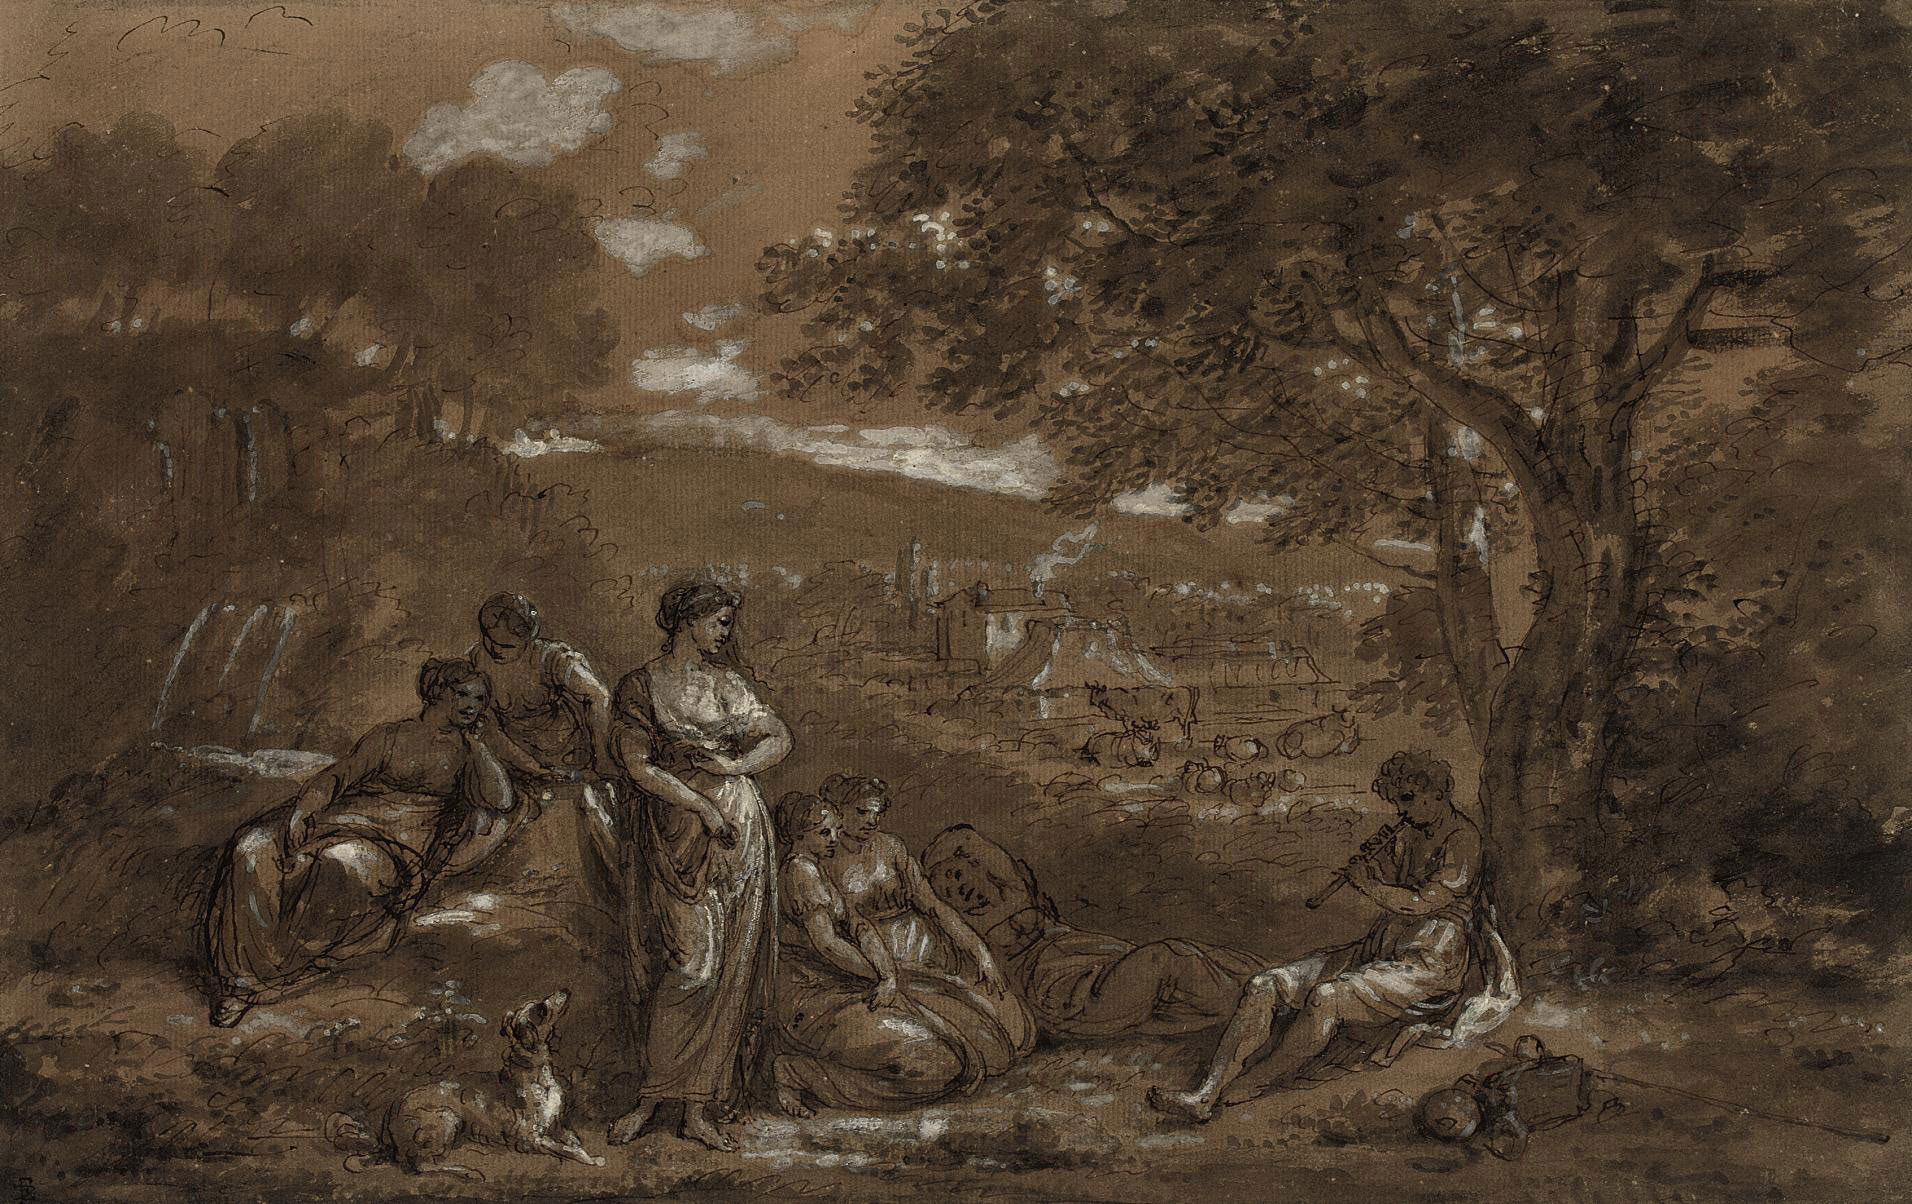 A shepherd piping to nymphs in a pastoral landscape